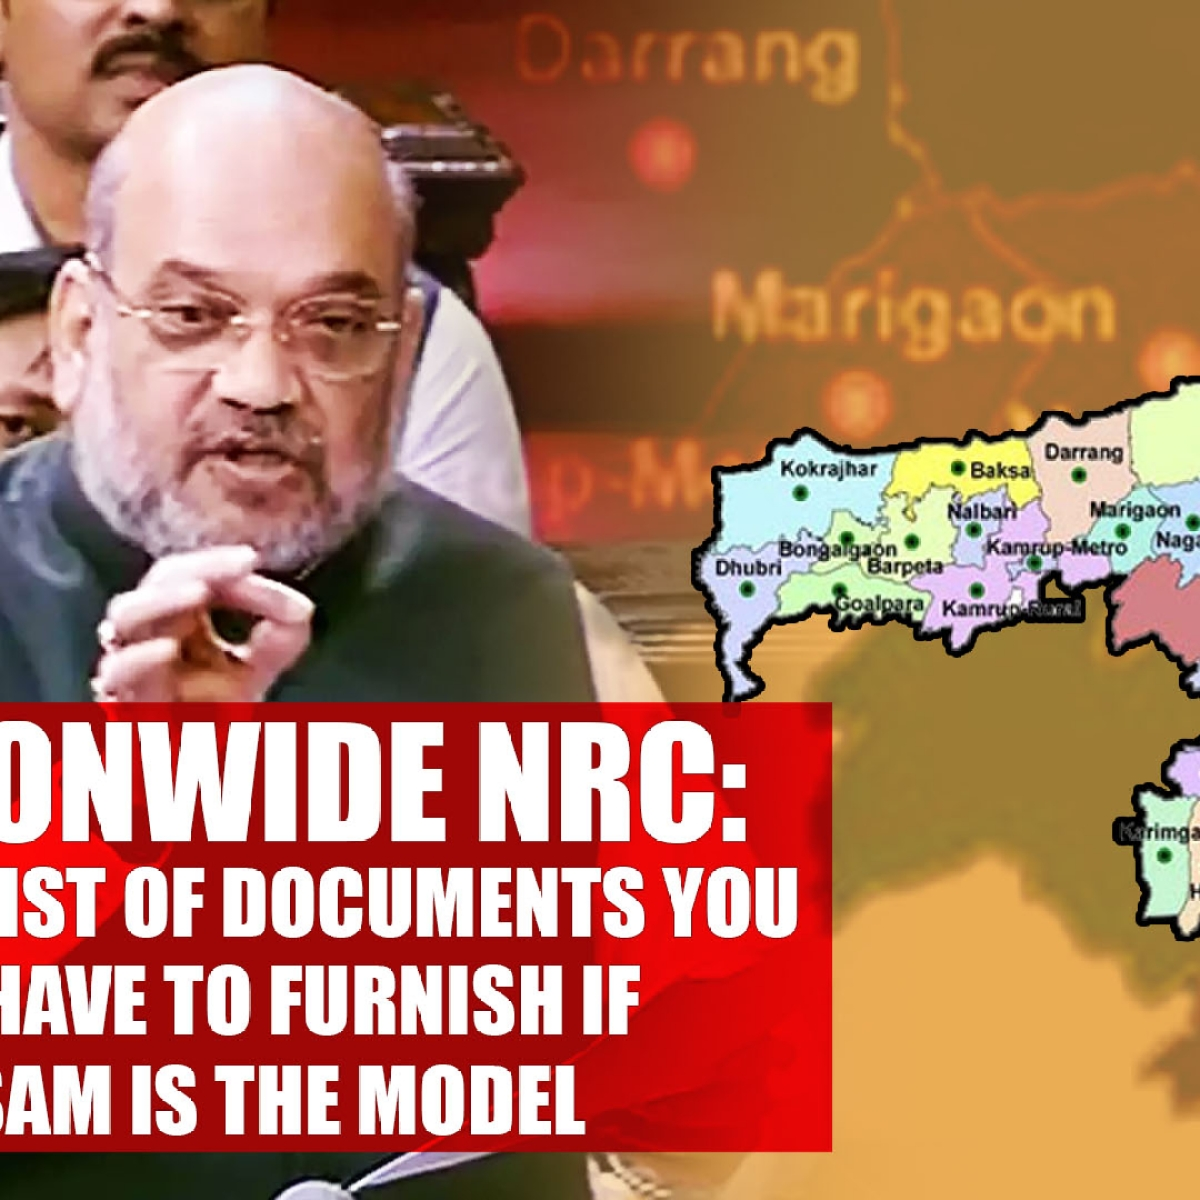 Nationwide NRC: Here's a List of Documents You May Have to Furnish if Assam is the Model